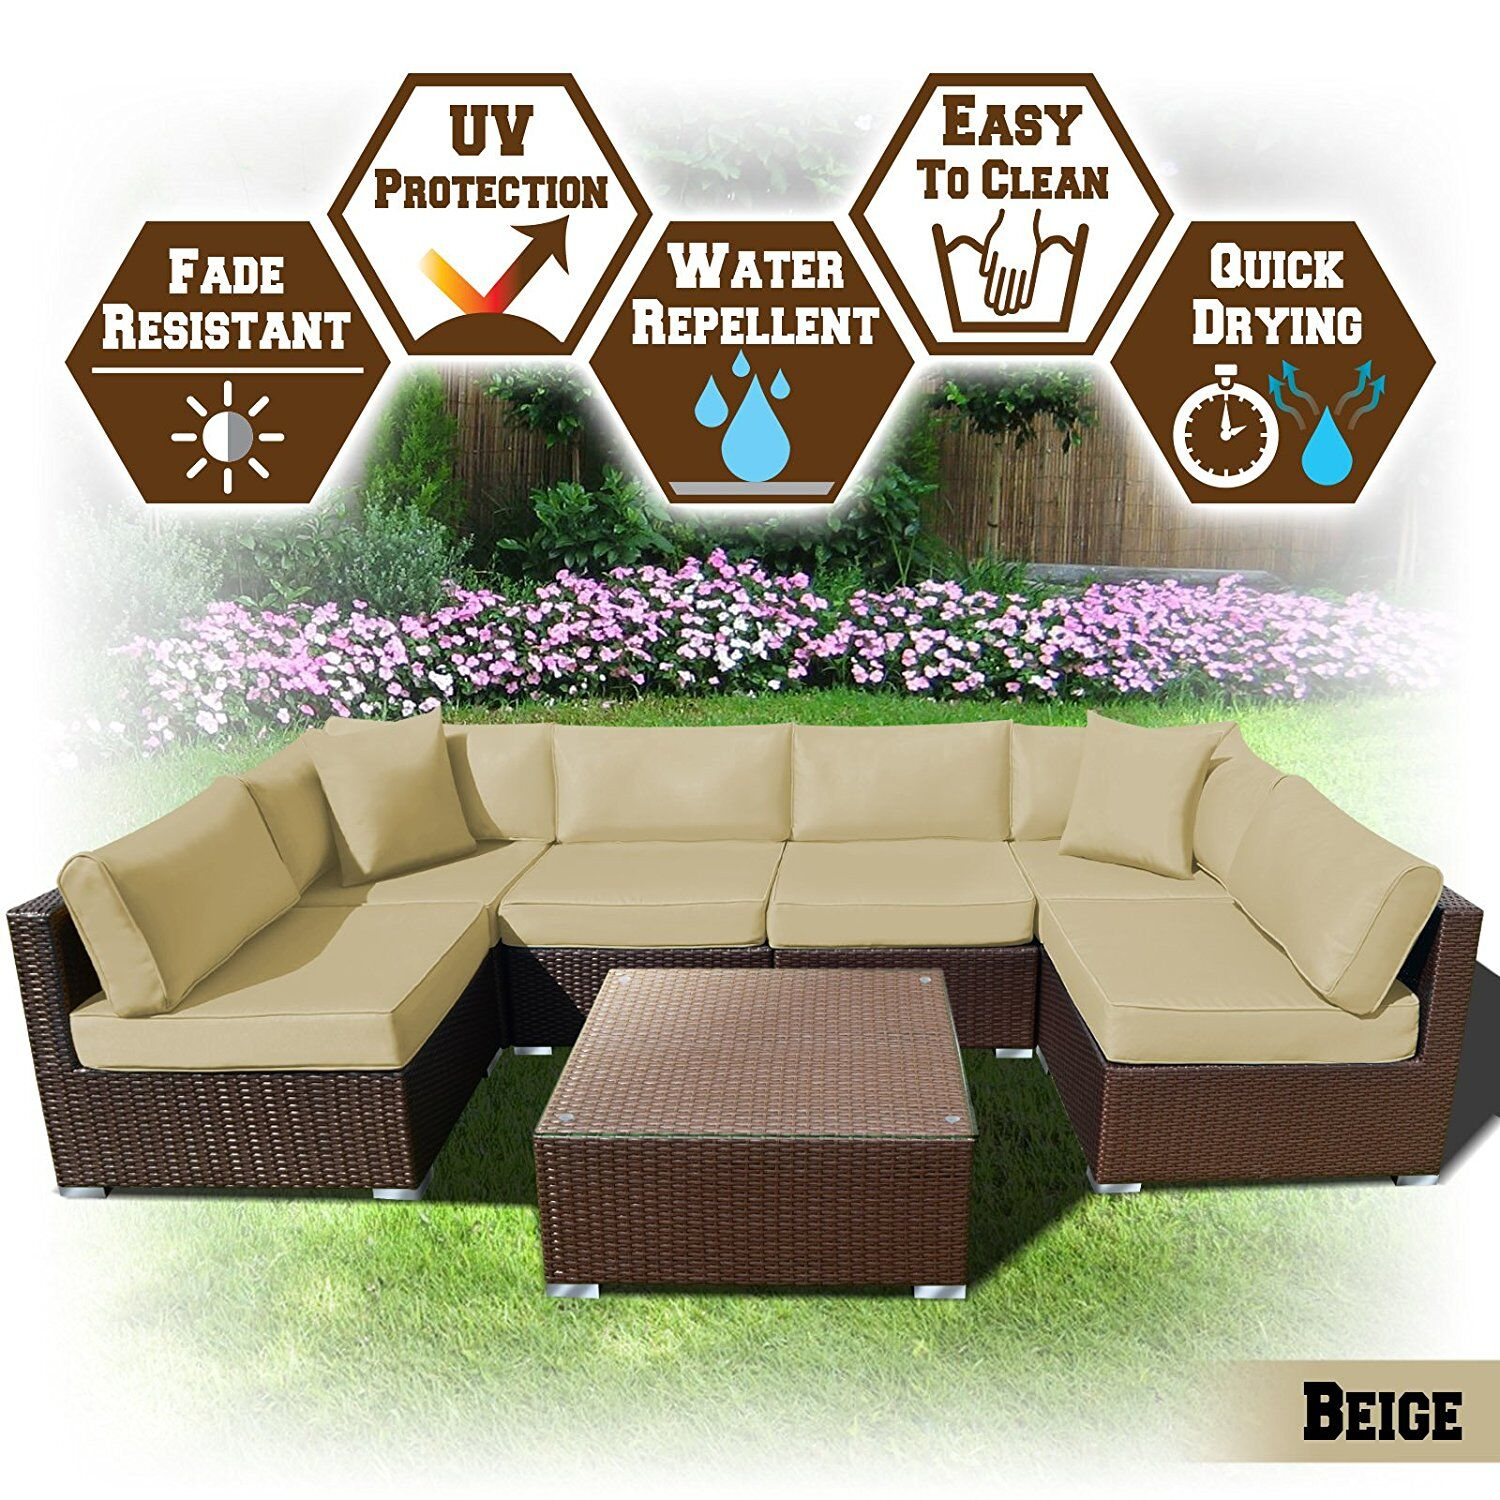 Arwen 7 Piece Rattan Seating Group with Cushions Cushion Color: Beige